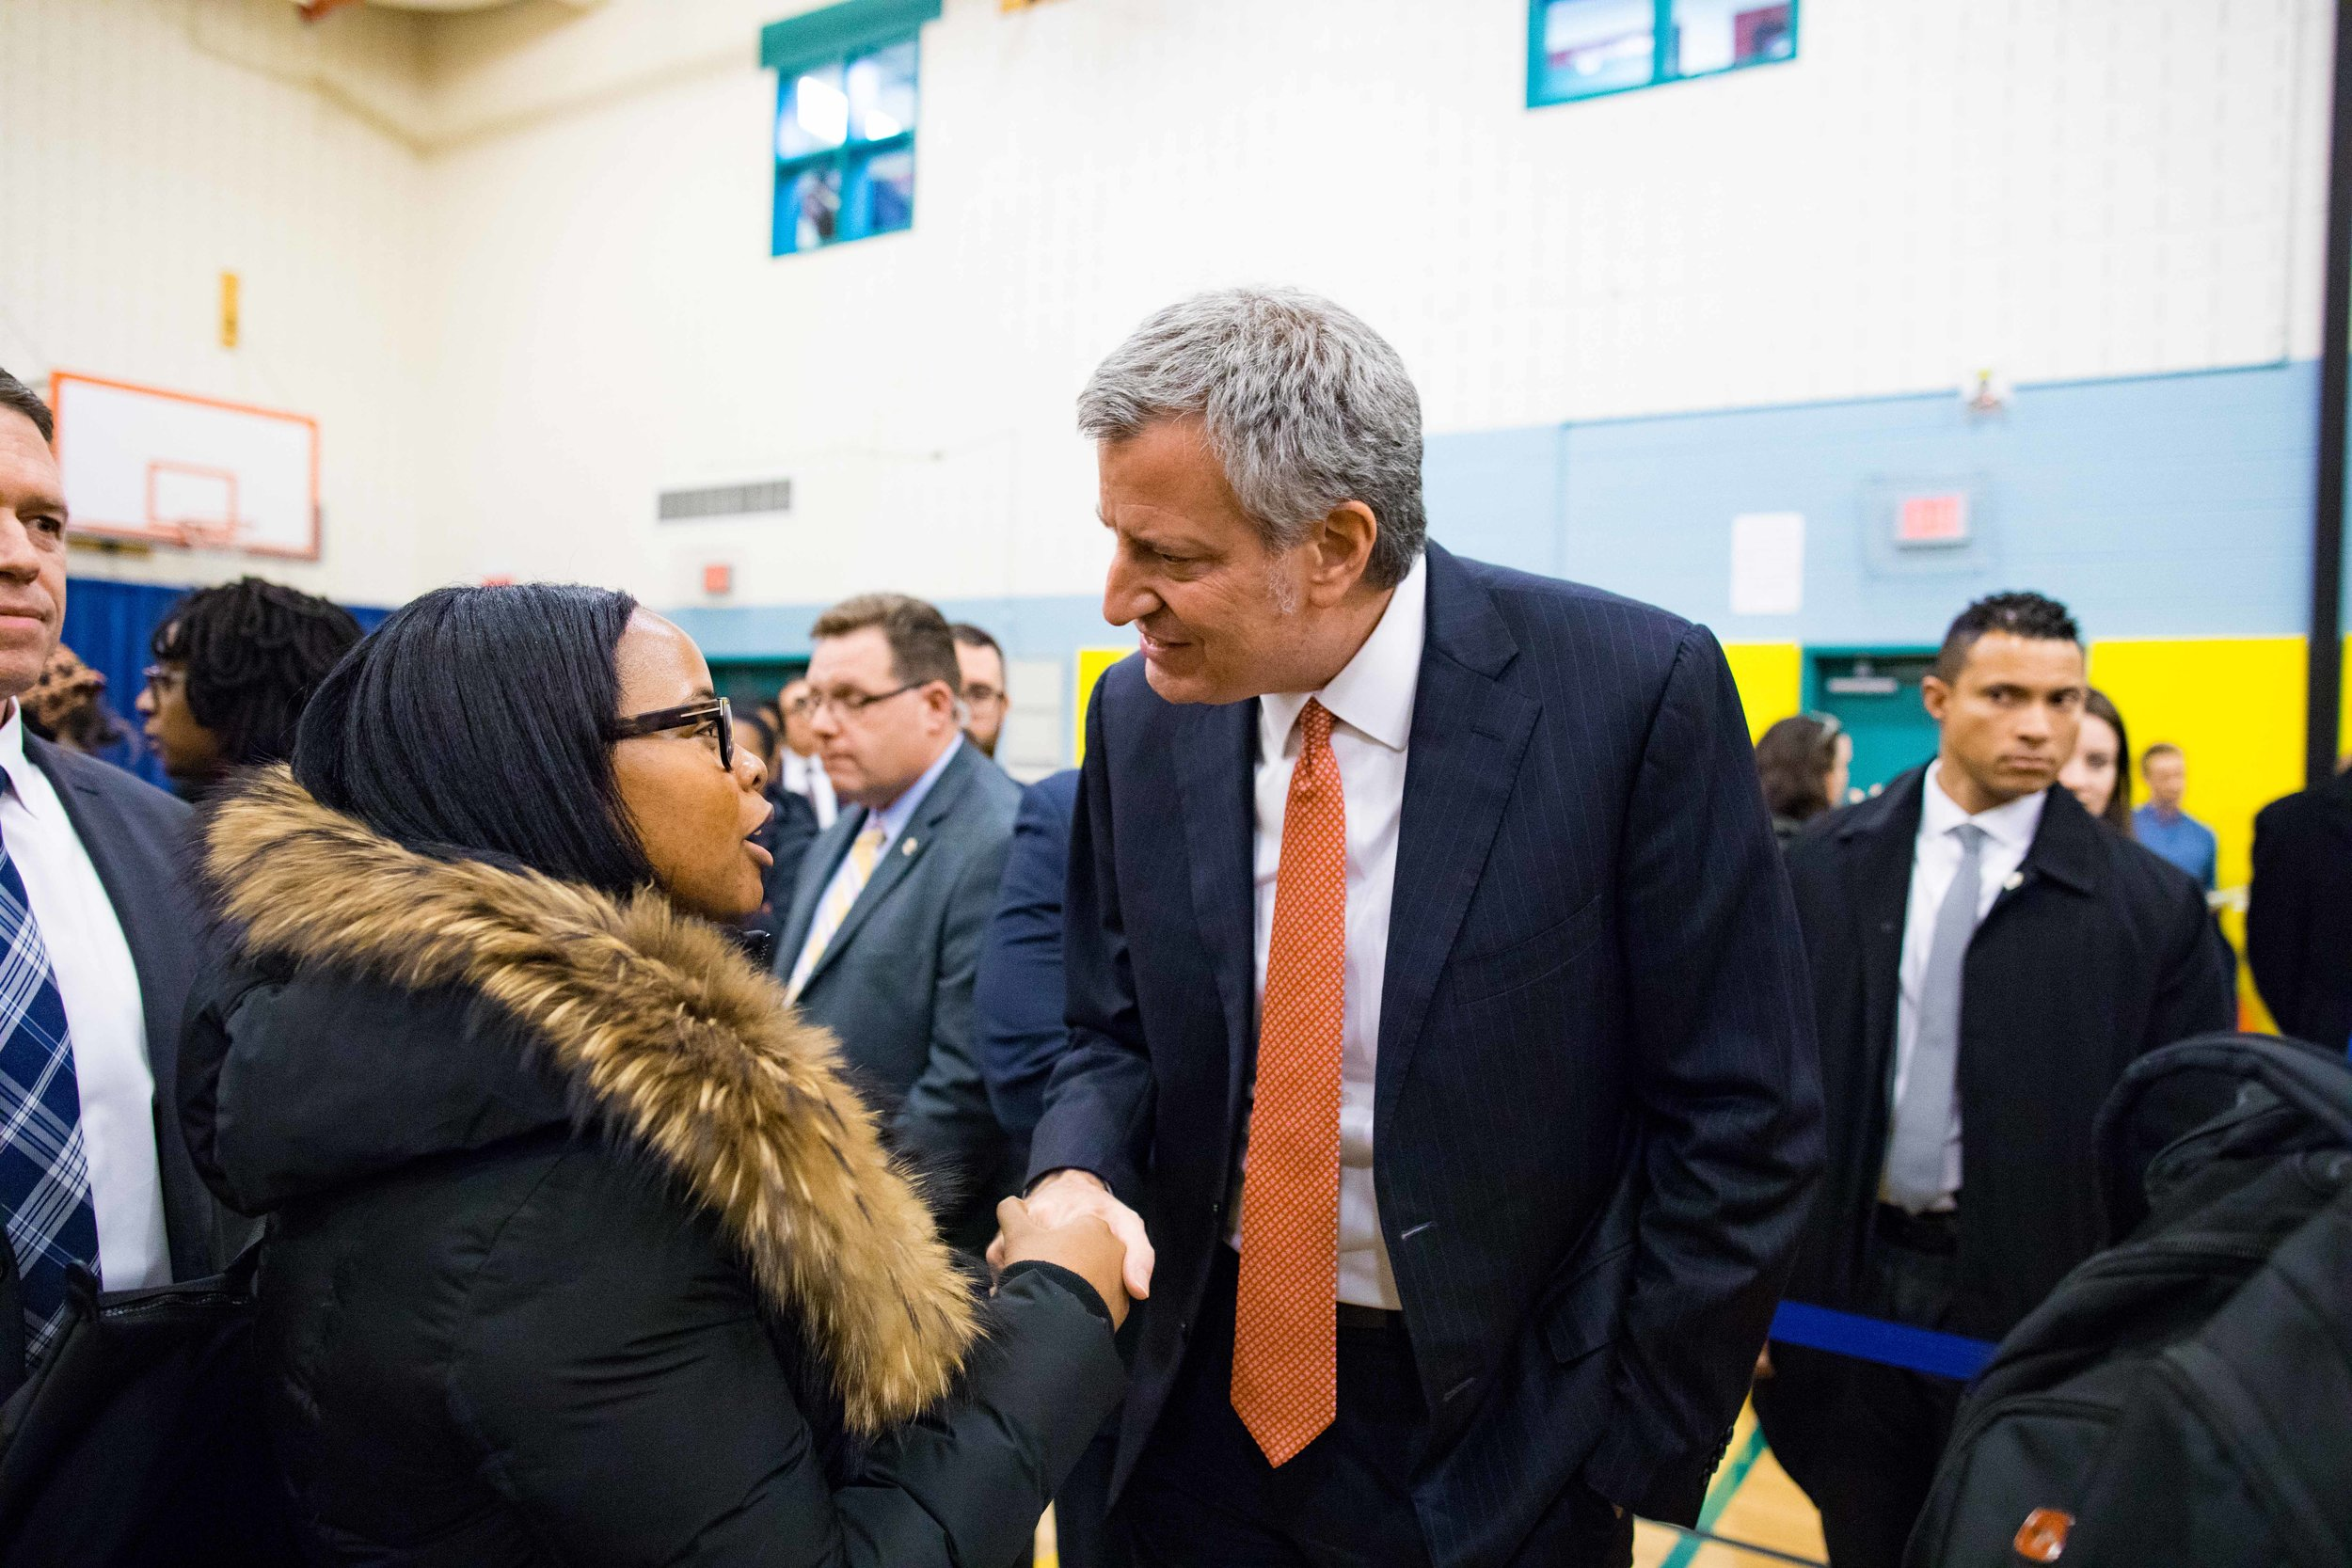 Social Work / Community Organizing intern Tiffany Noboa meets with the mayor to discuss the lack of co-sheltering options for people experieincing homelessness with animals in NYC.